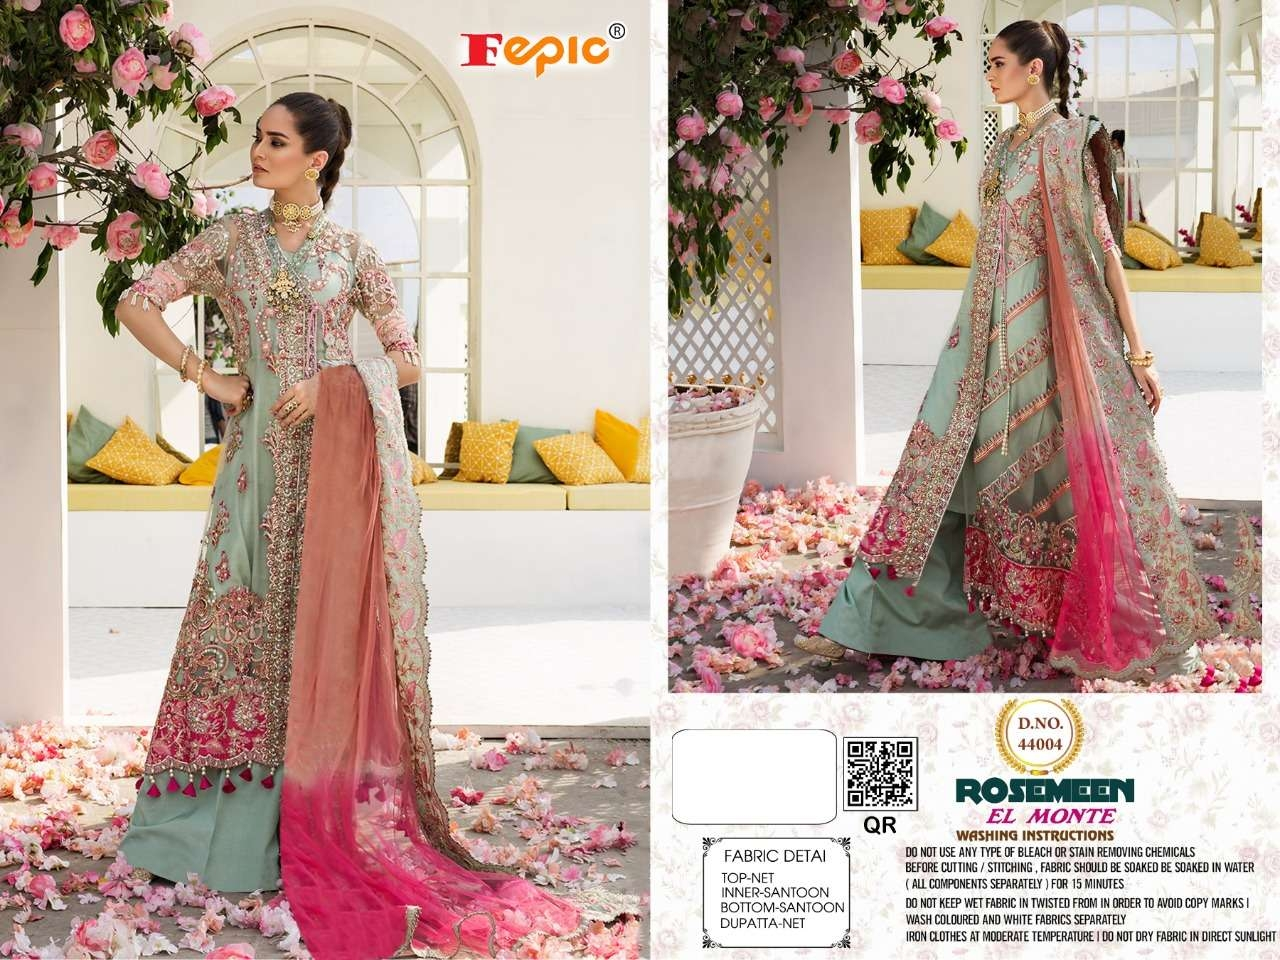 FEPIC SHARE FEPIC READY TO SHIP SINGLE SALWAR KAMEEZ 16-OCT-2021 7